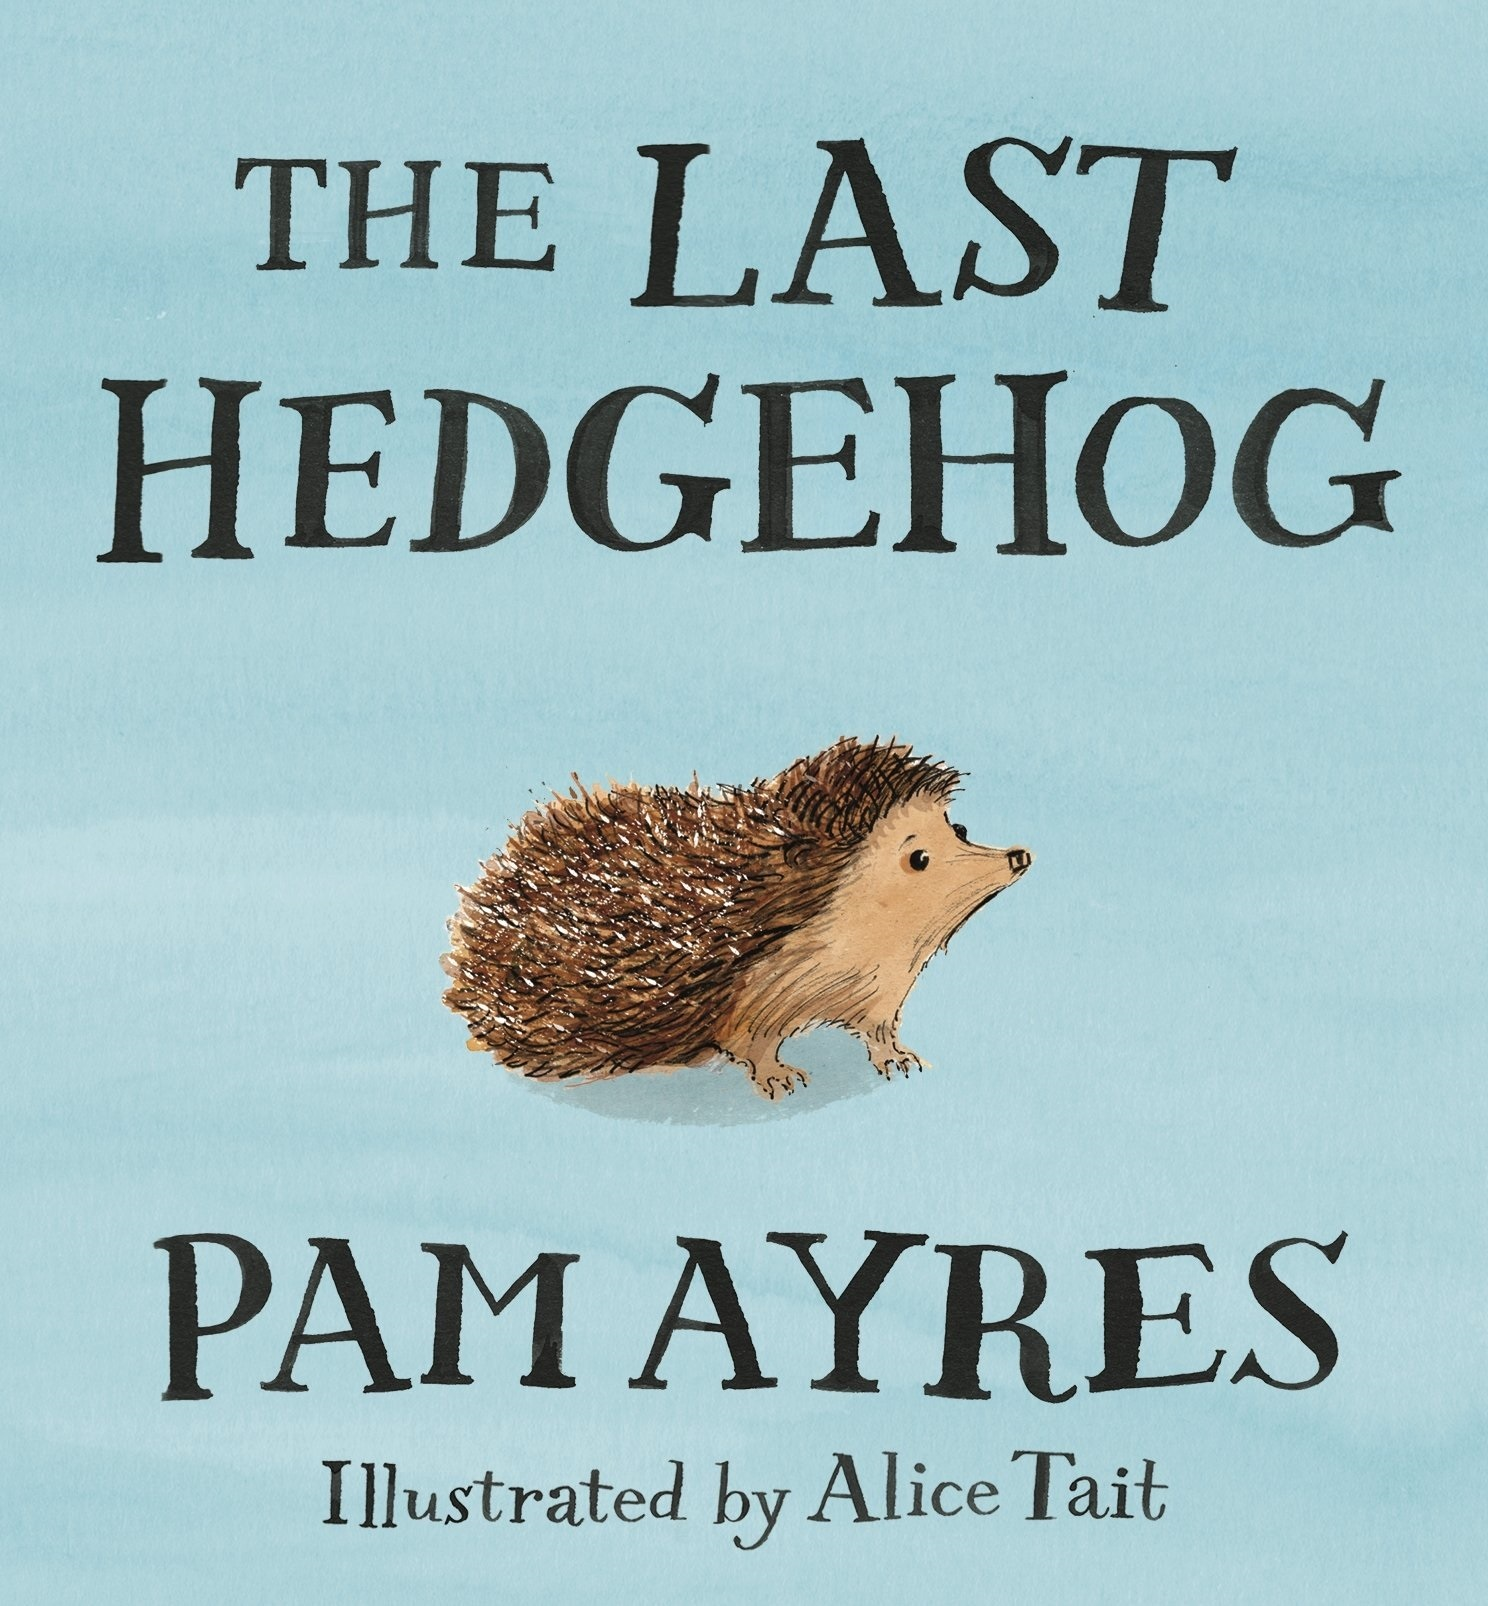 How To Make A Book Hedgehog ~ Little apple book of the week the last hedgehog by pam ayres